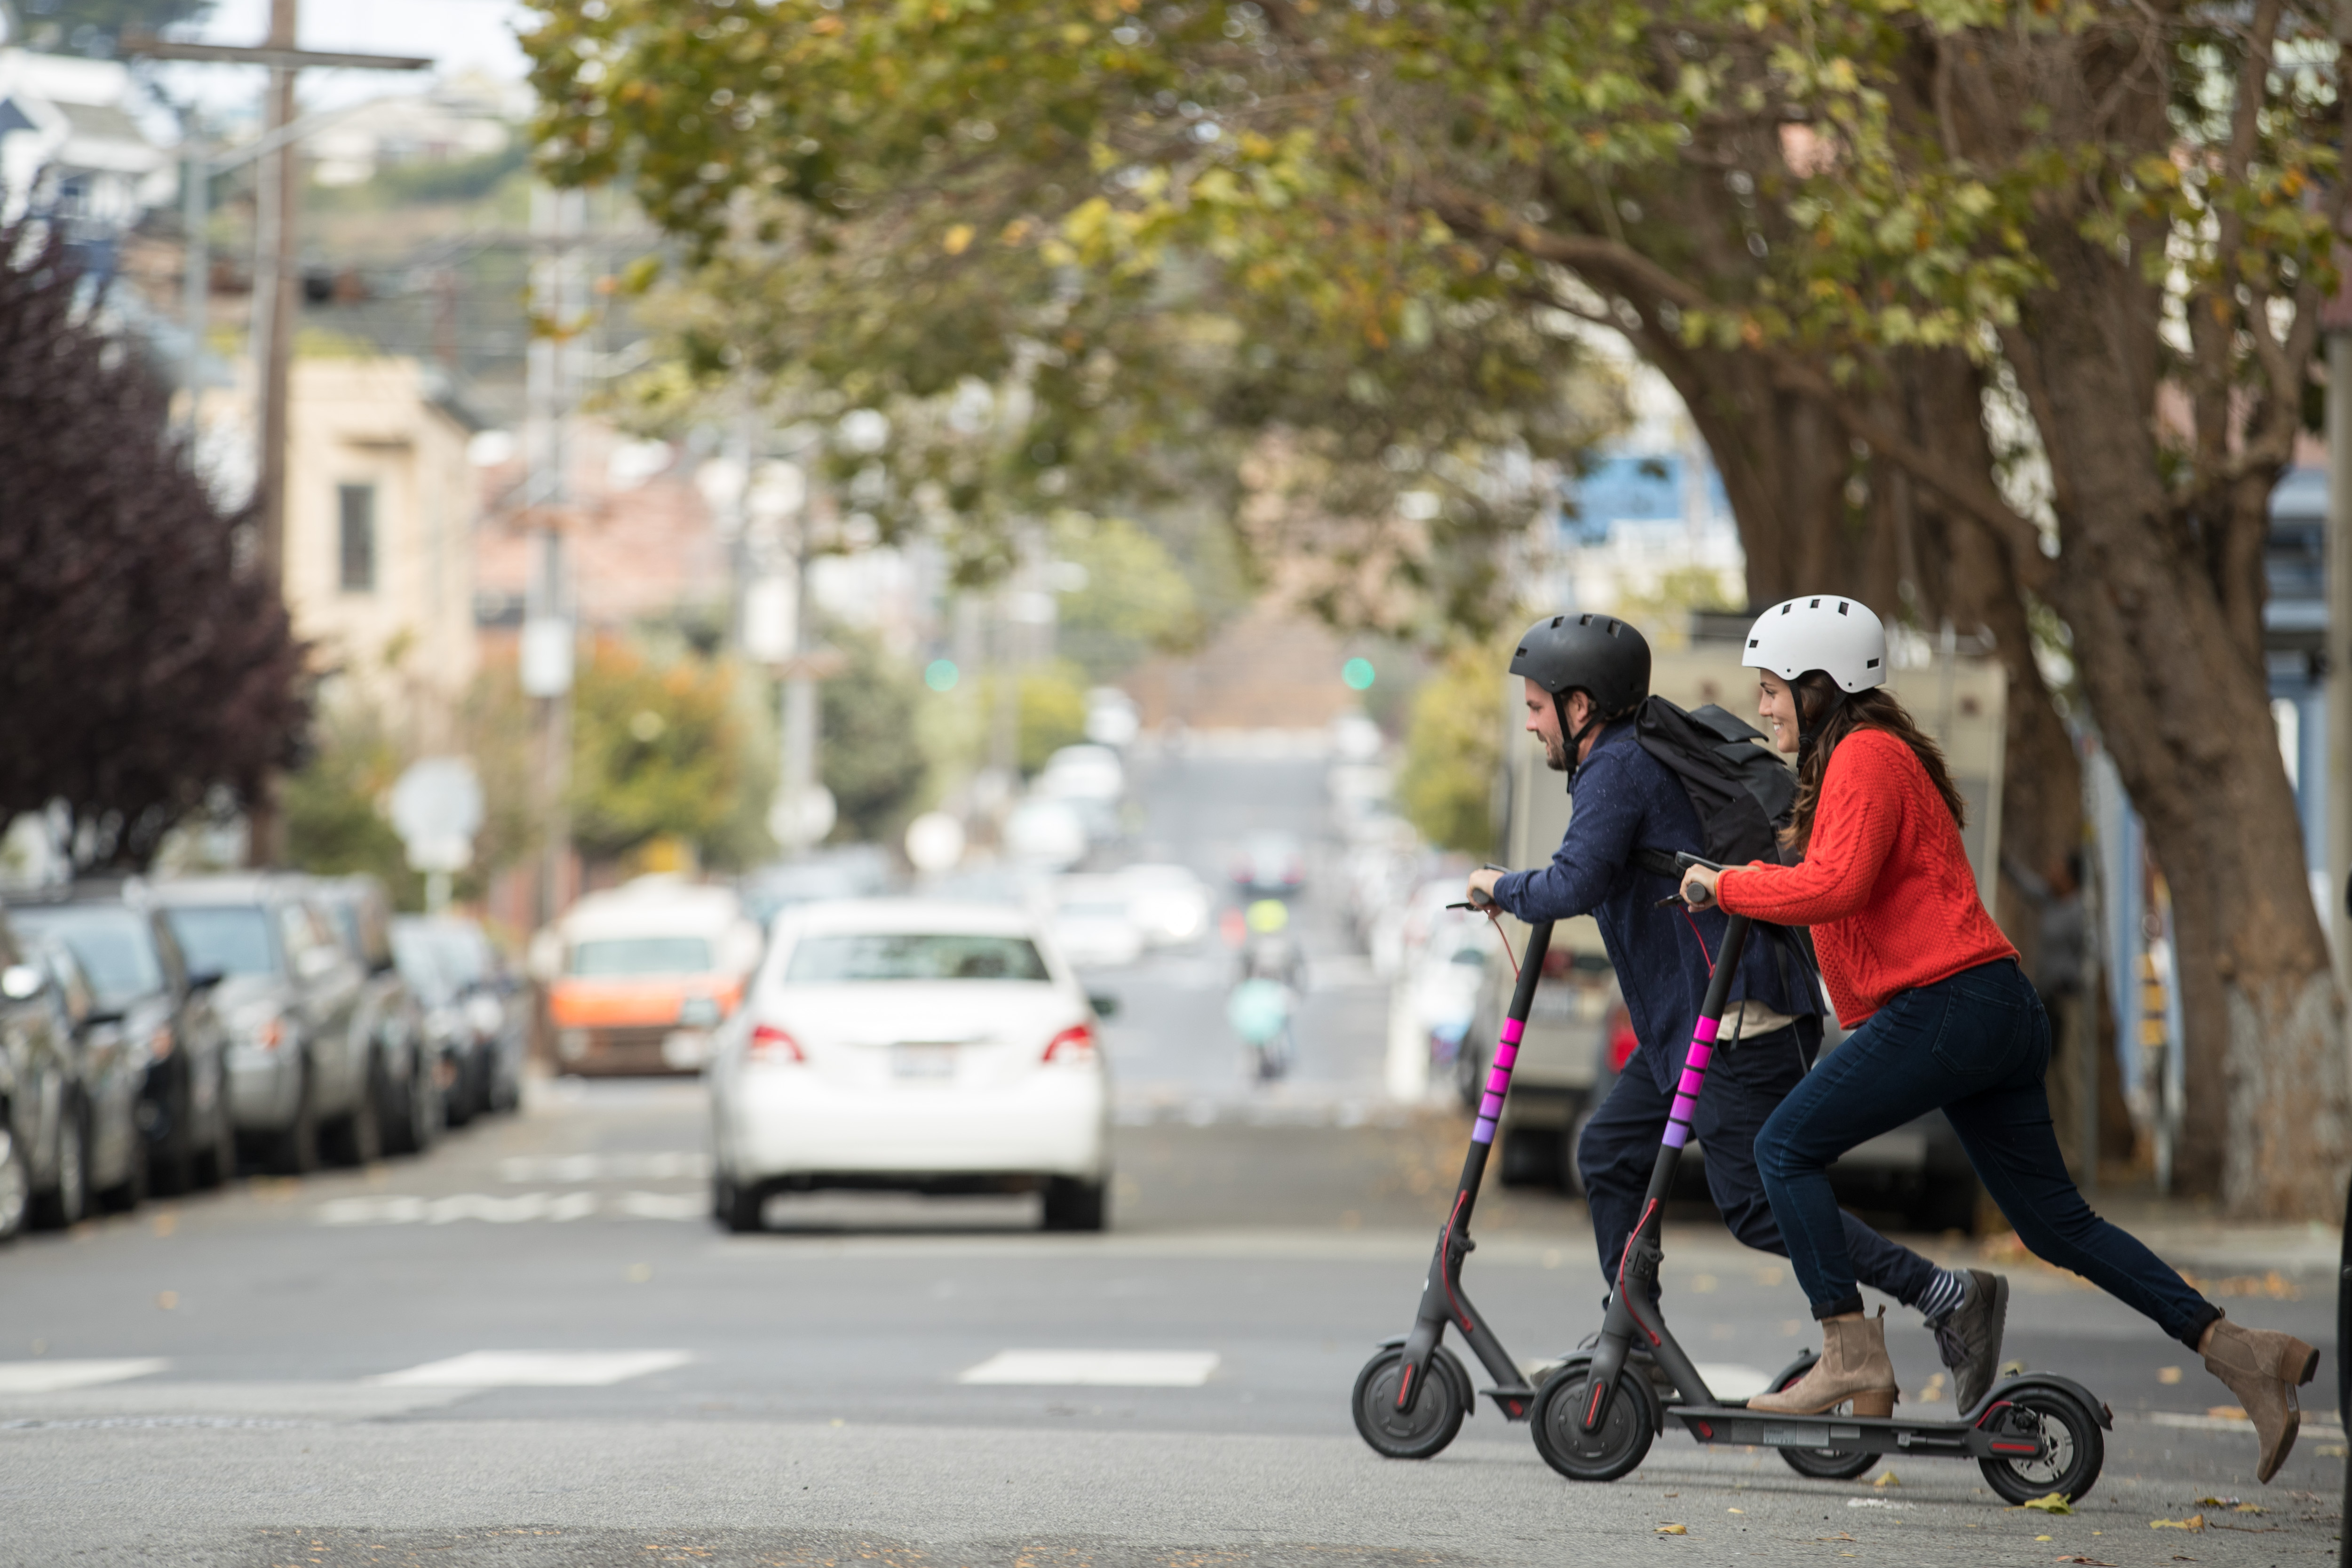 Two riders with helmets using scooters to cross a street